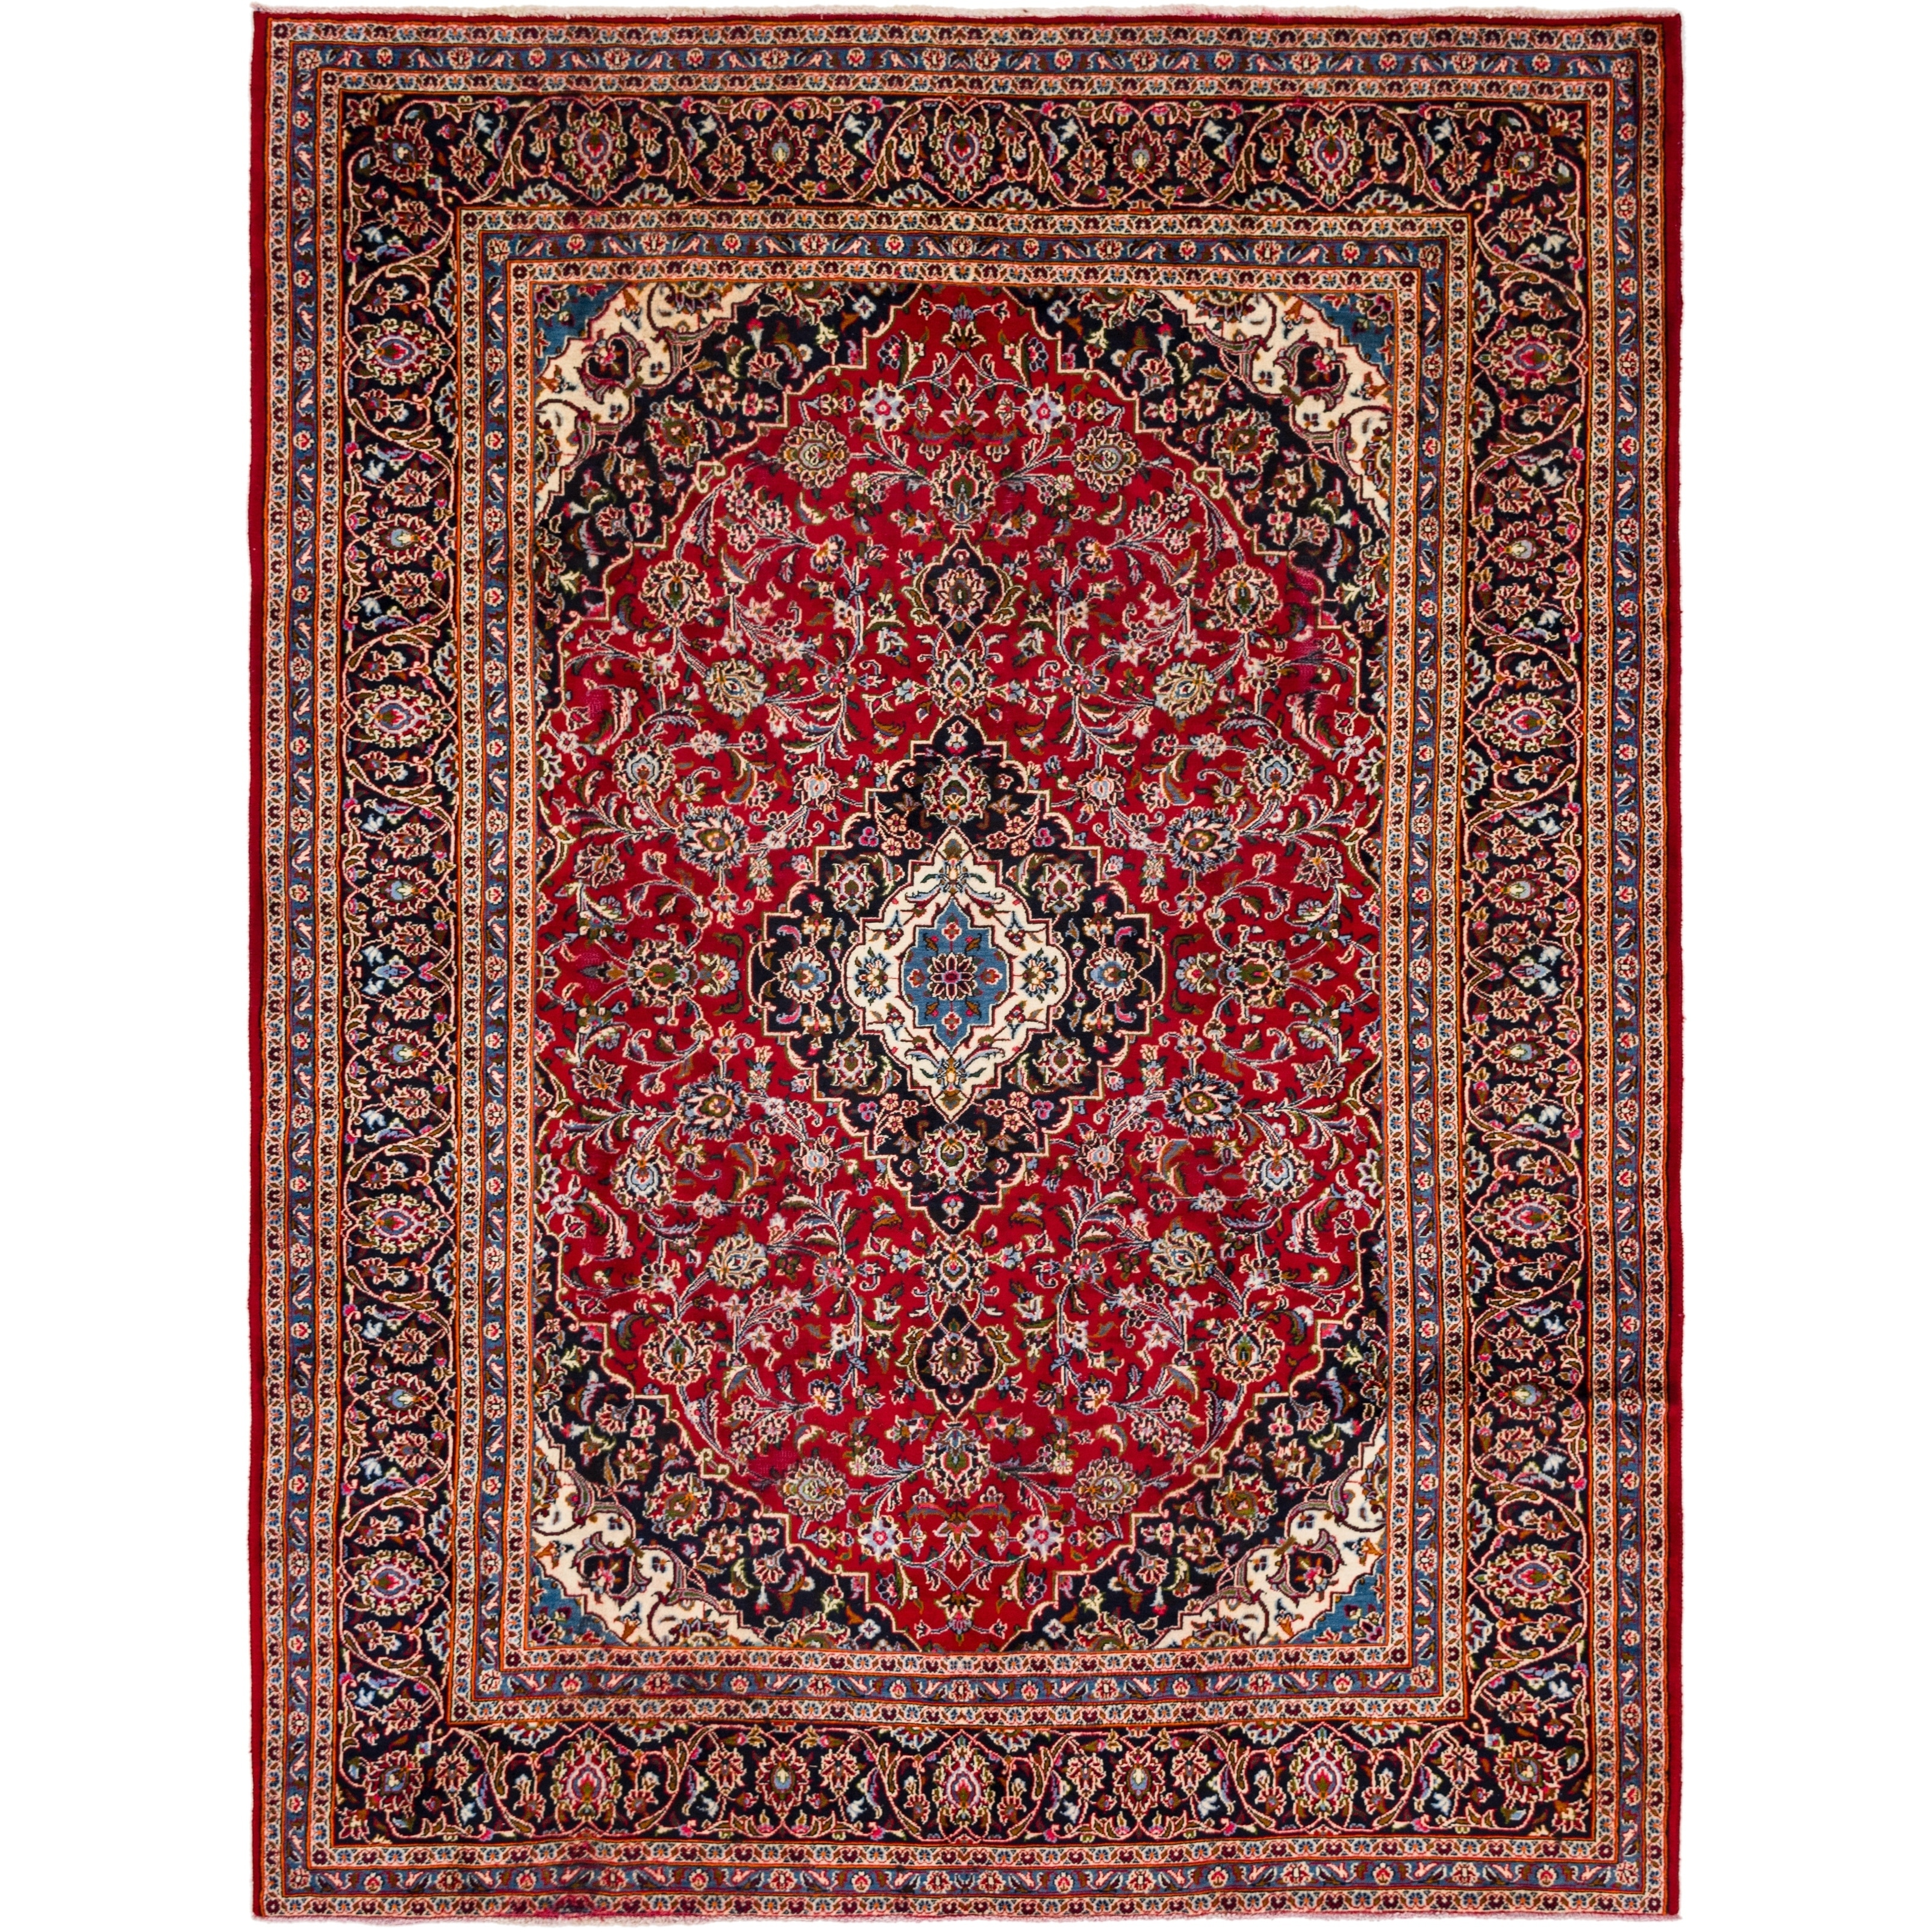 Hand Knotted Kashan Semi Antique Wool Area Rug - 8 2 x 11 (Red - 8 2 x 11)